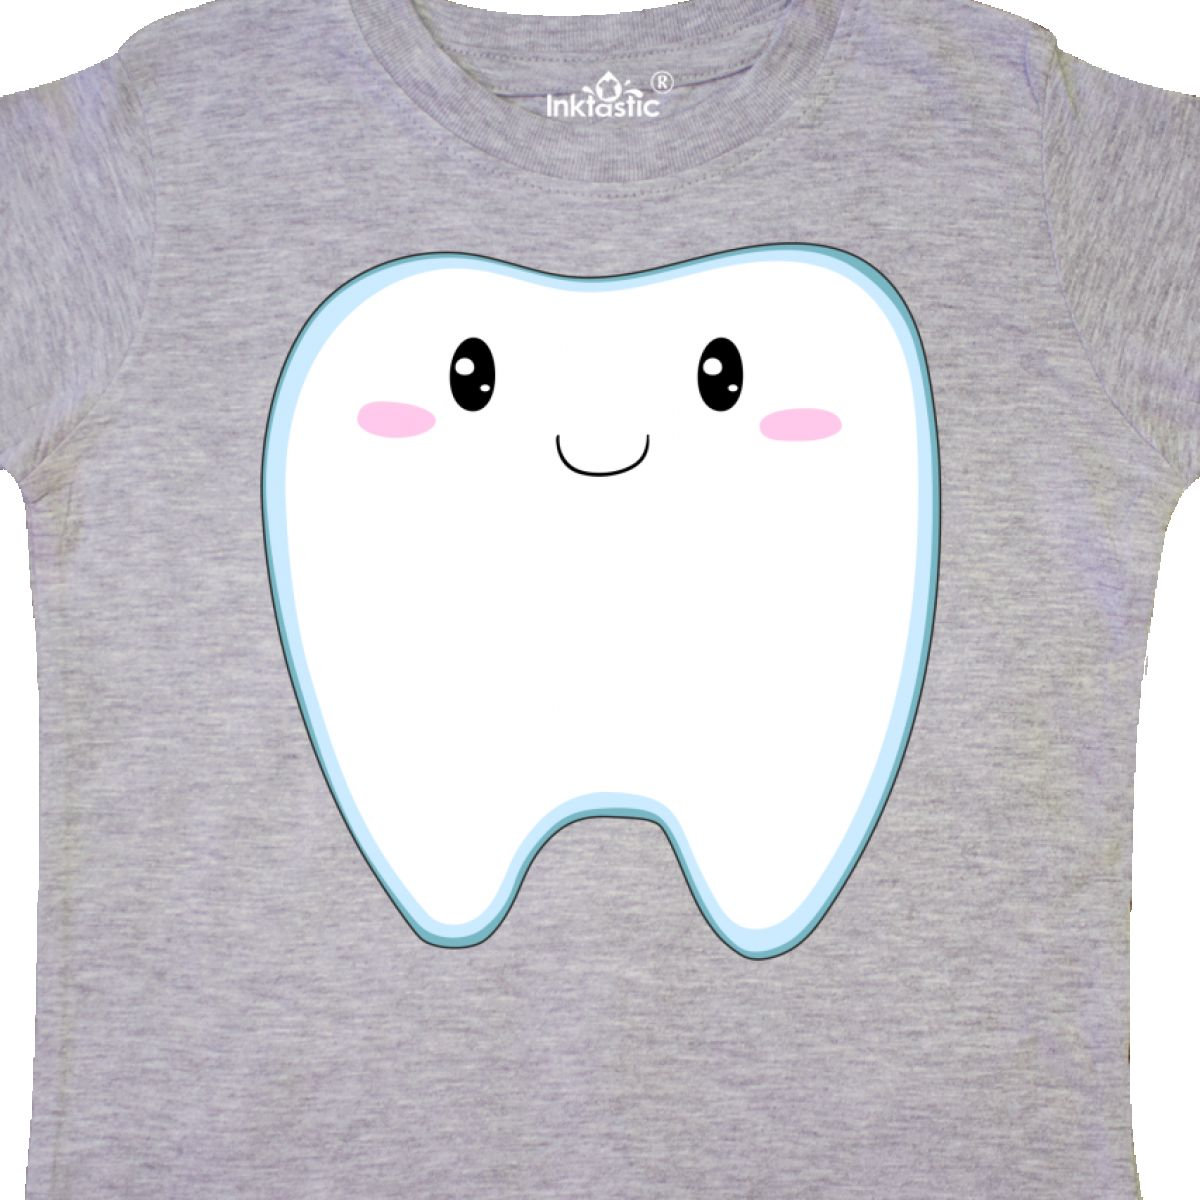 Inktastic-Cute-Tooth-Toddler-T-Shirt-First-New-Dentist-Dental-Teeth-Loose-Unisex thumbnail 4